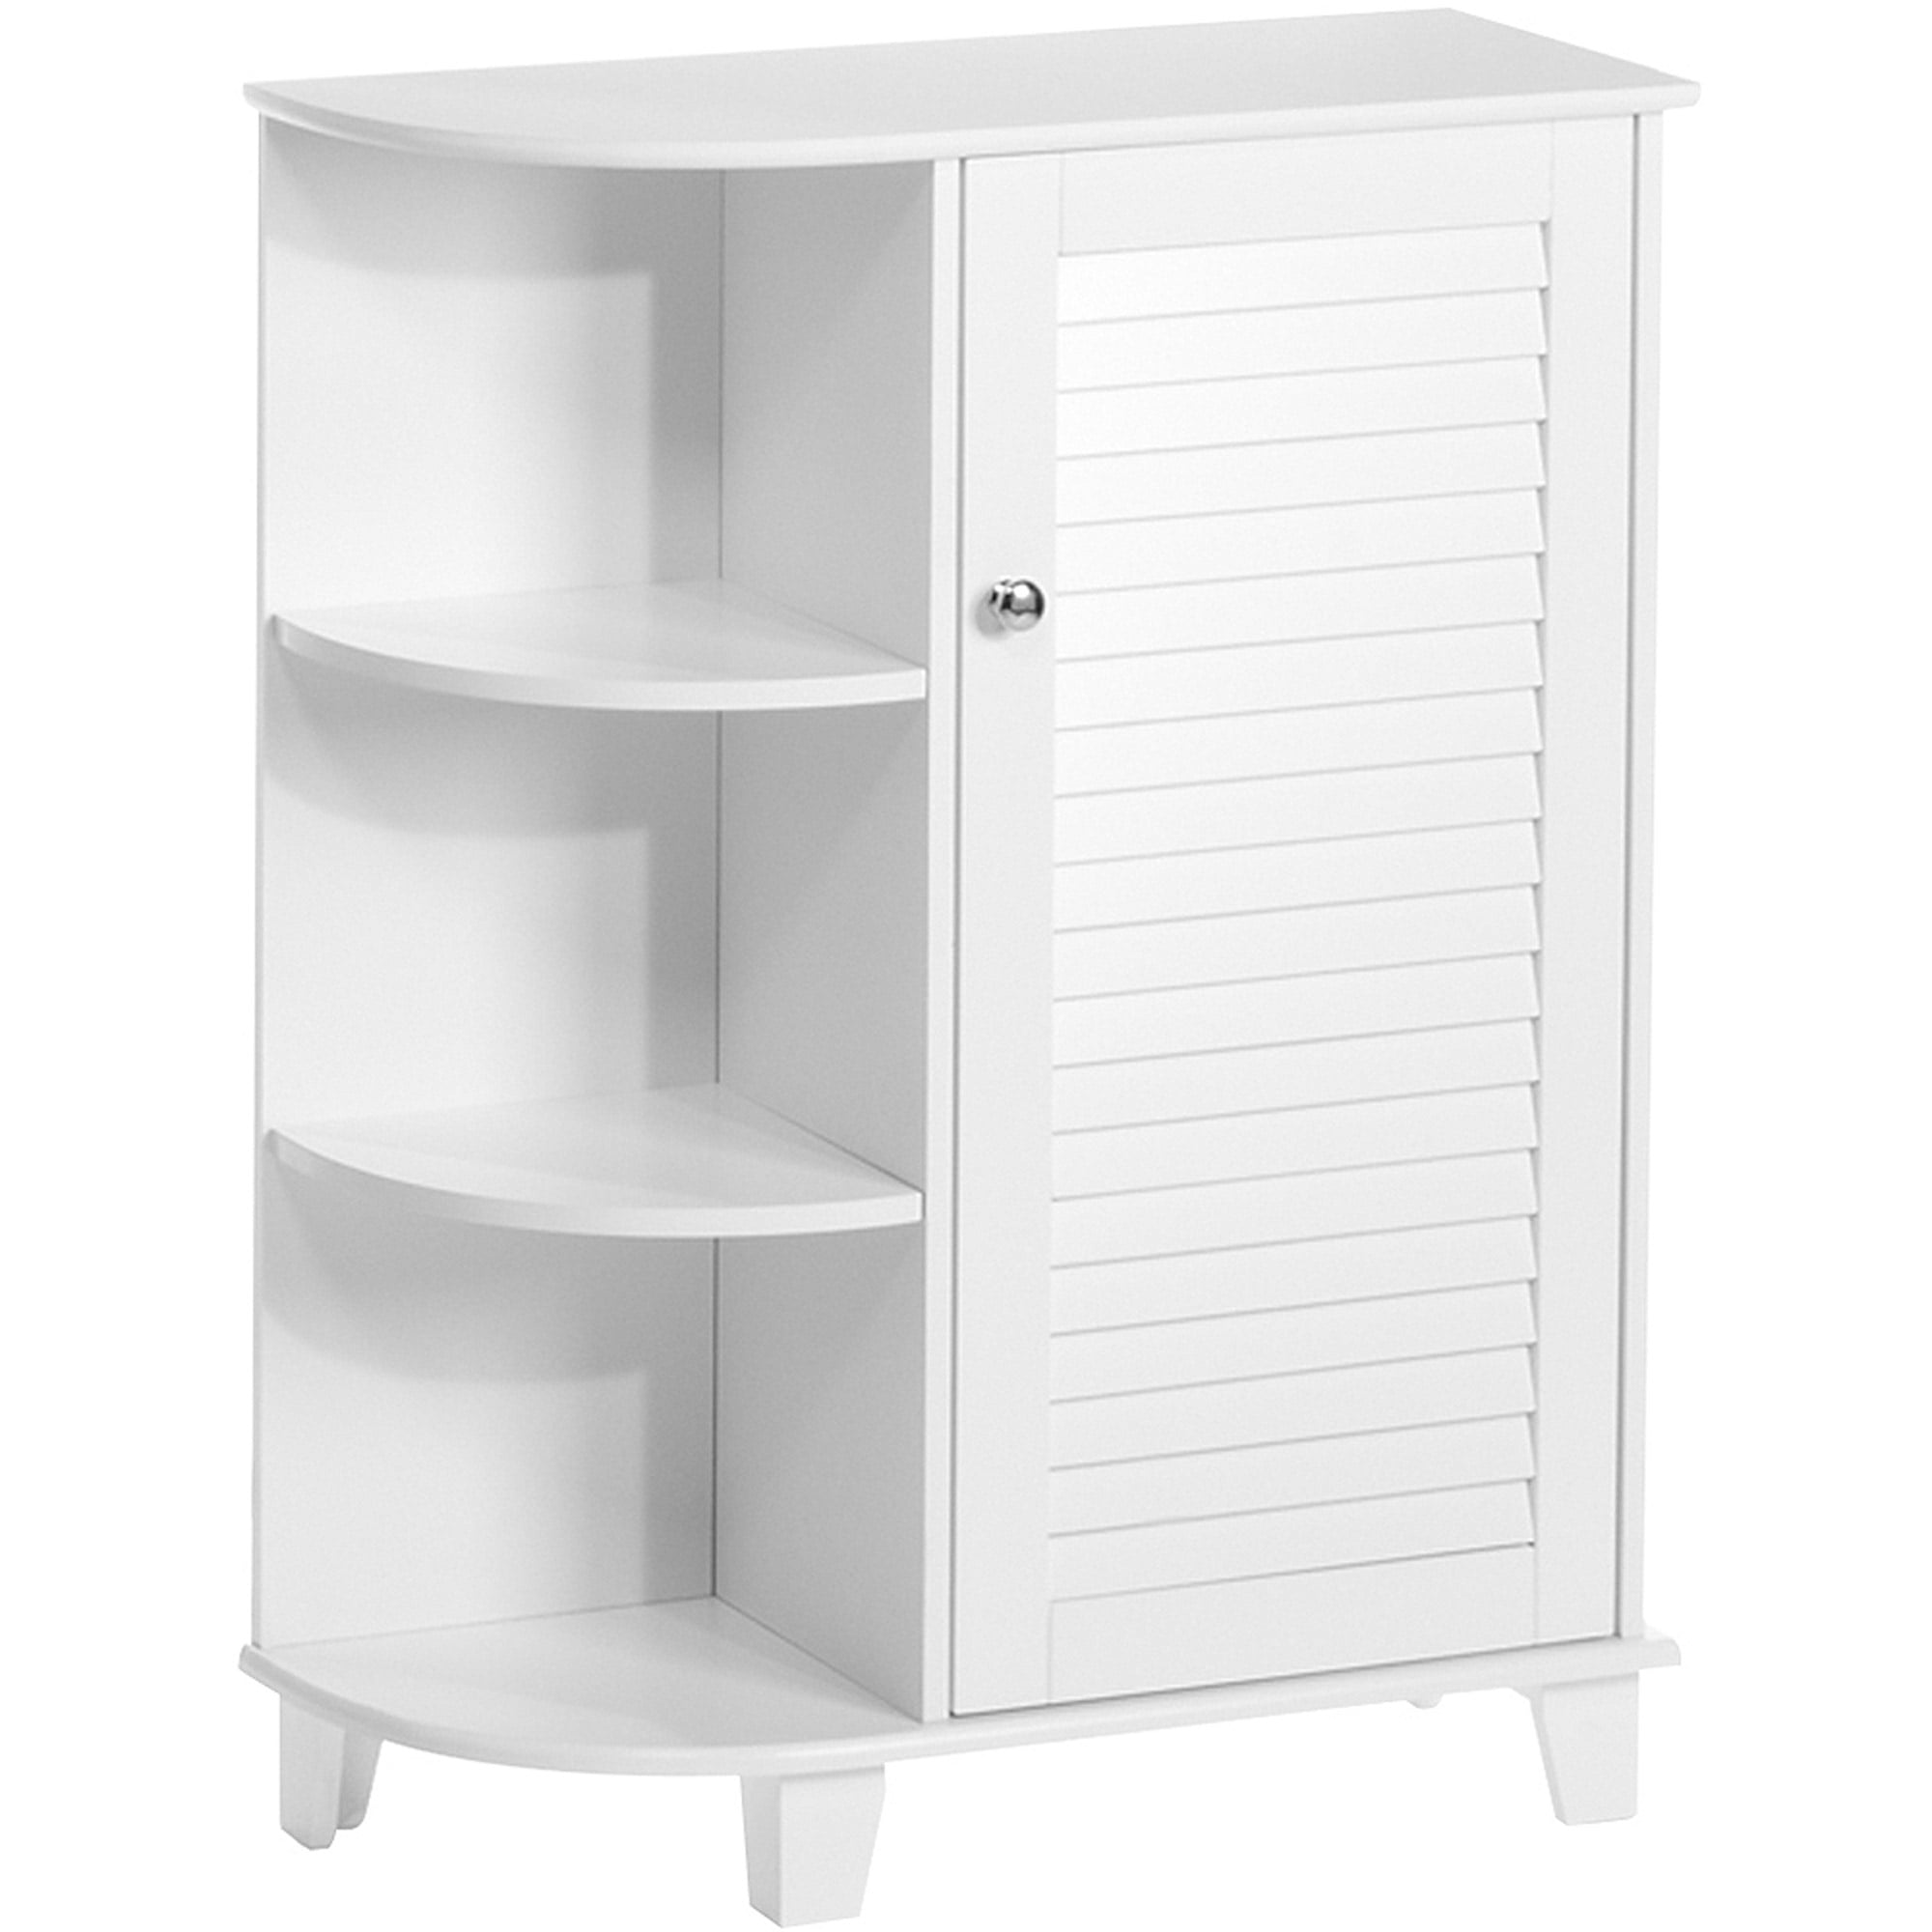 RiverRidge Home Ellsworth Floor Cabinet with Side Shelves, White ...